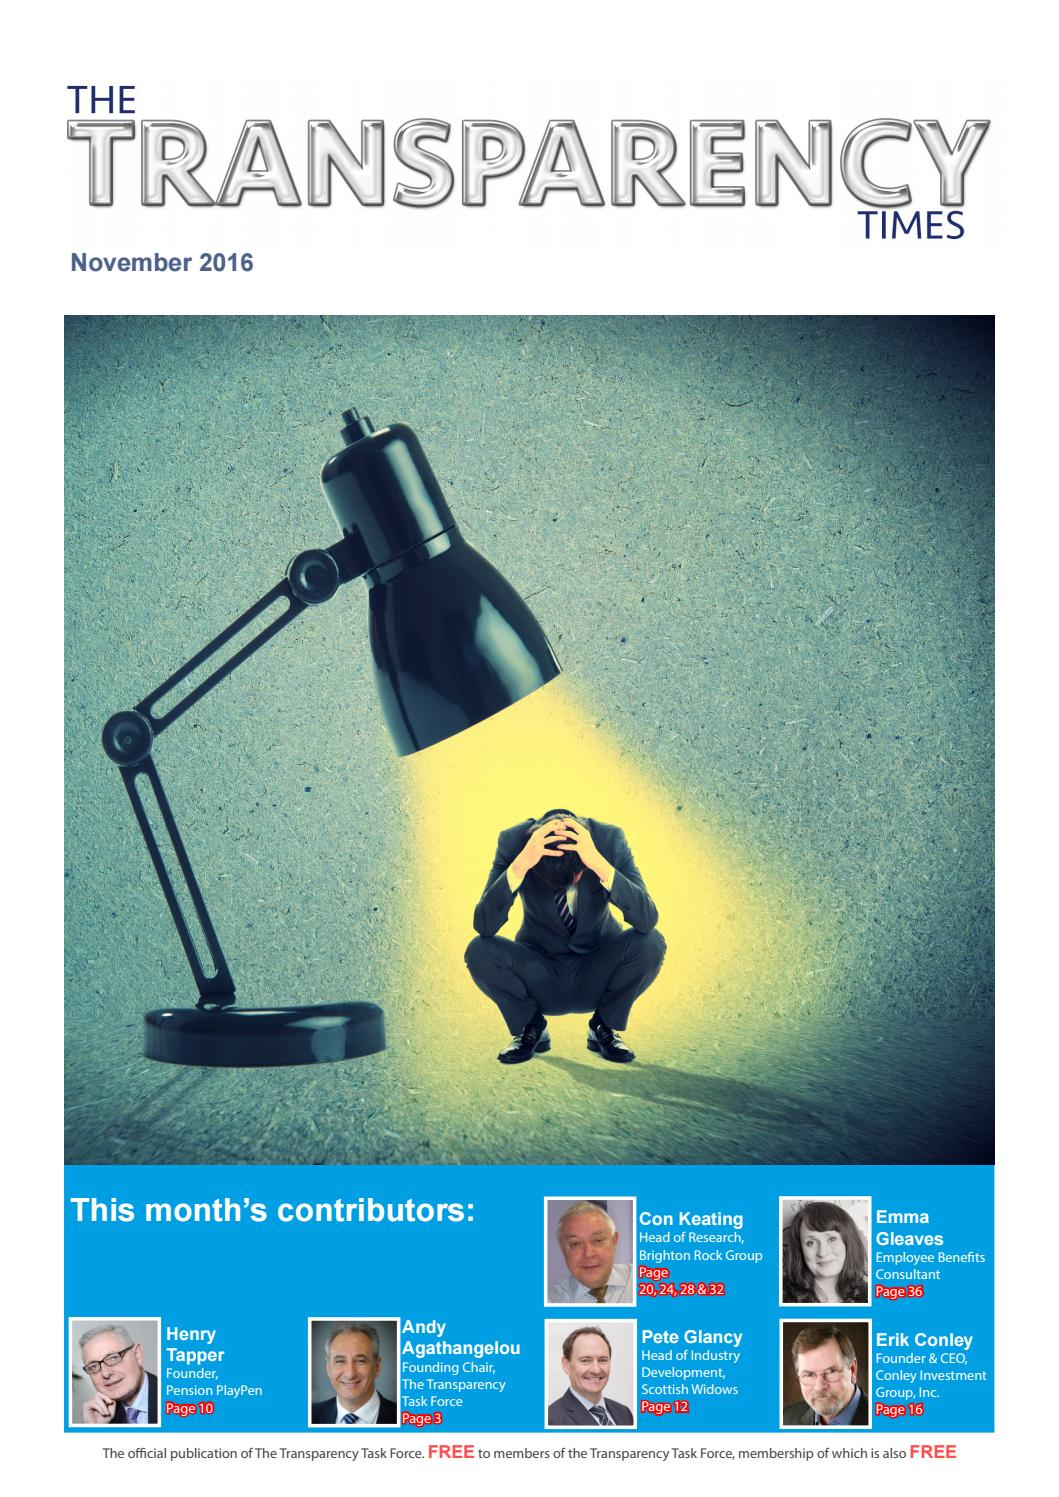 The transparency times edition 7 november 2016 by transparency task the transparency times edition 7 november 2016 by transparency task force issuu fandeluxe Choice Image